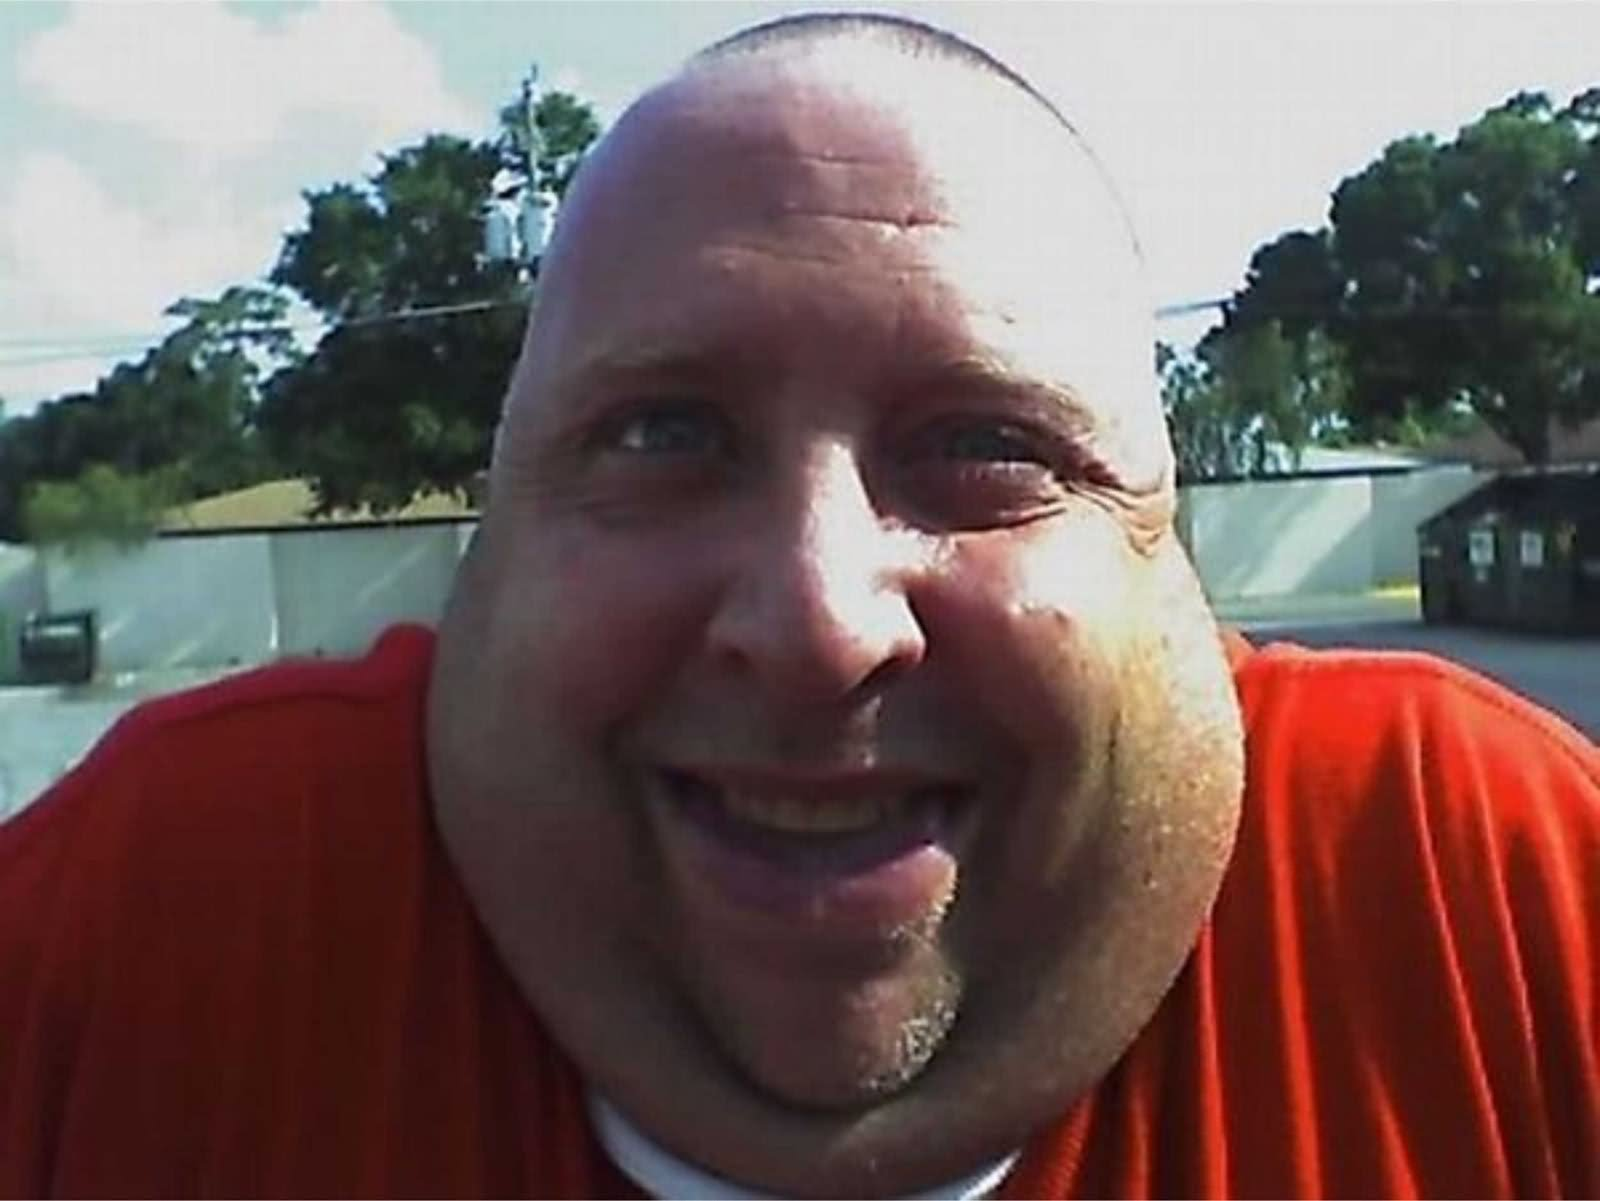 Funny Fat Man Face Image